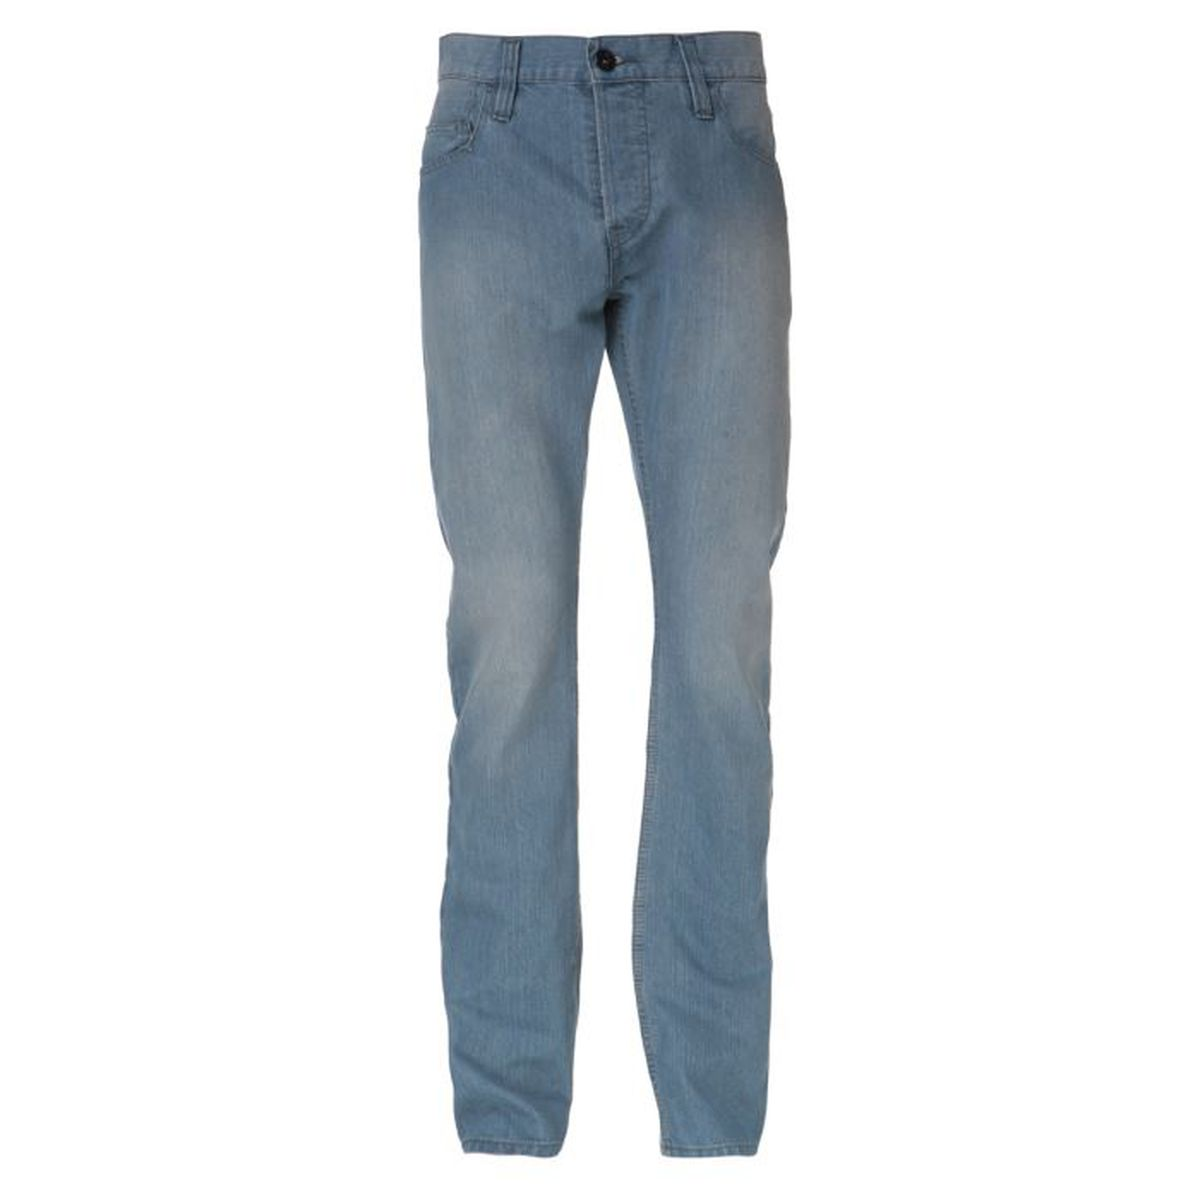 Jean complice homme basic